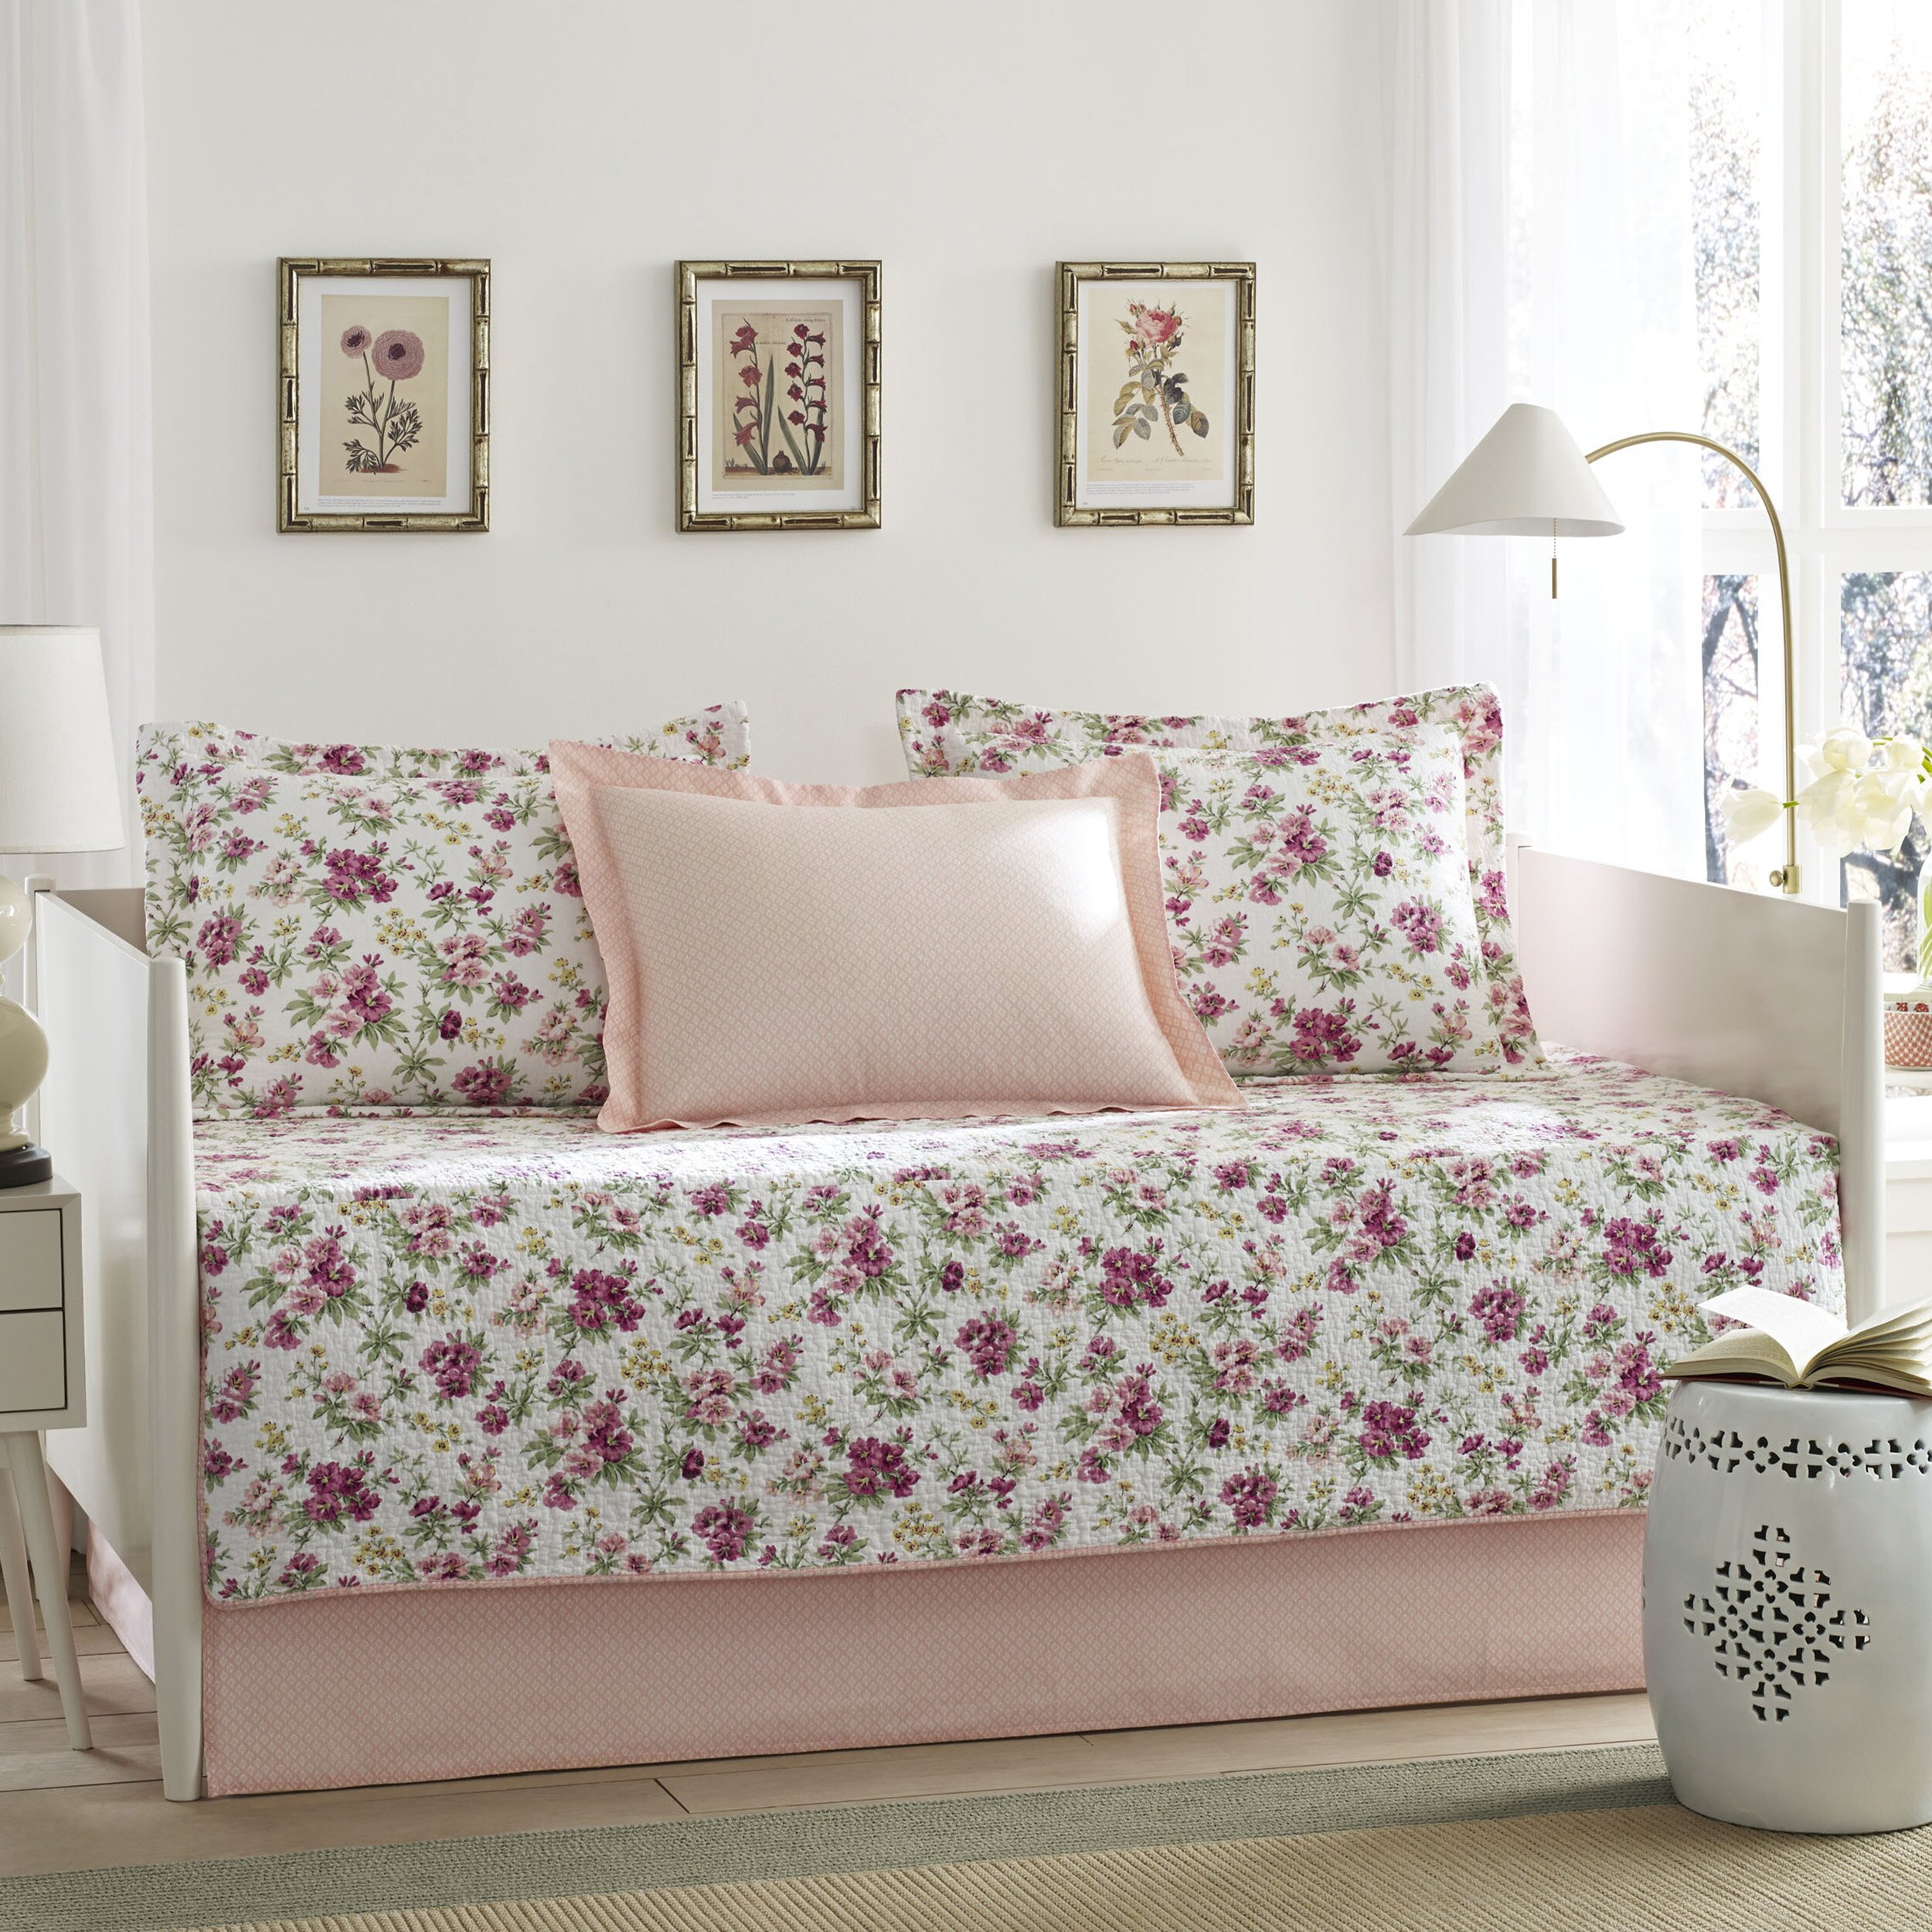 Laura Ashley Bedding For Daybeds : Laura ashley home dorthea piece reversible daybed set